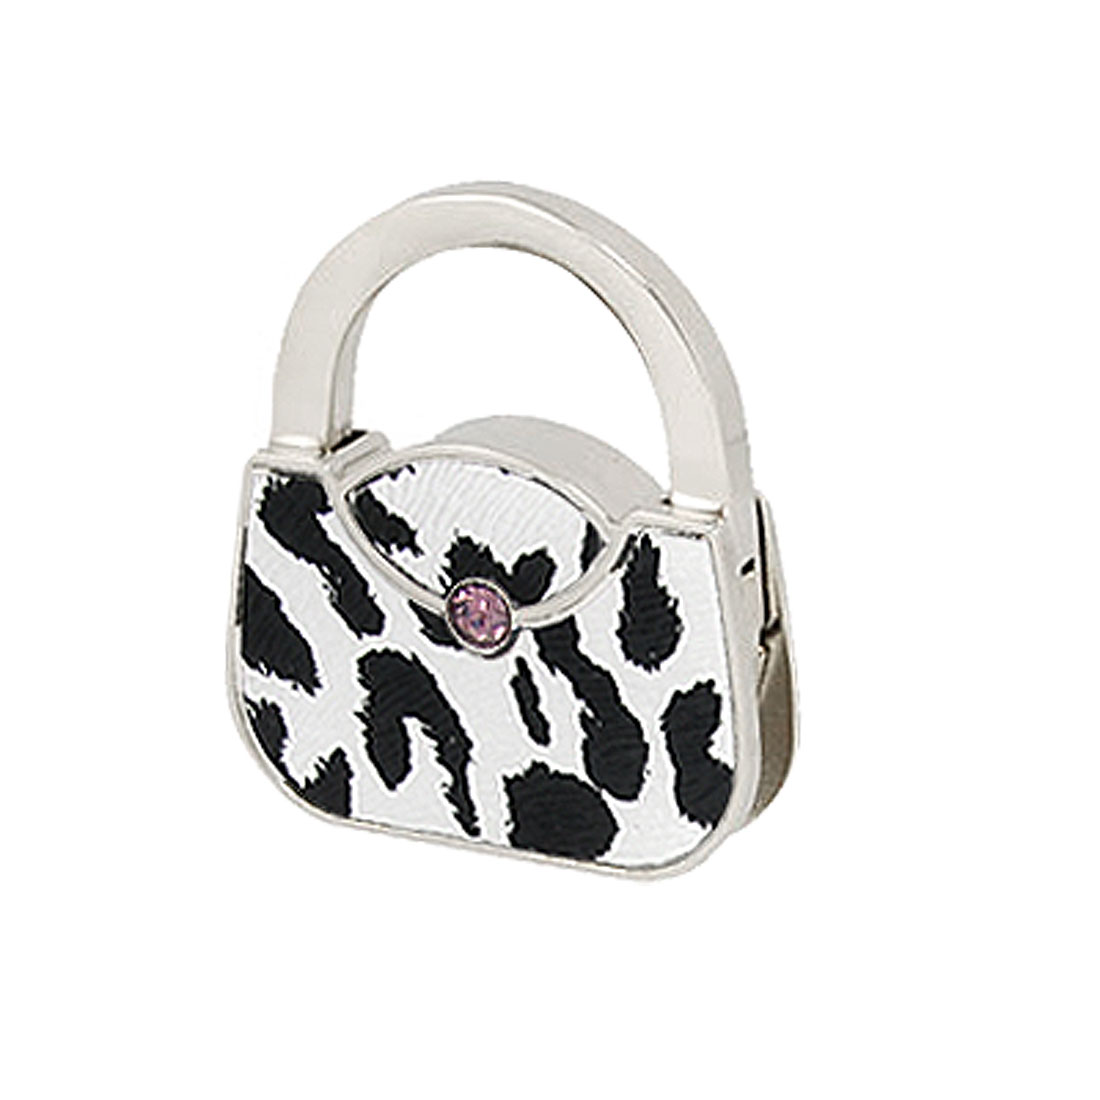 Handbag Shape Purse Leopard Print Foldable Table Hook